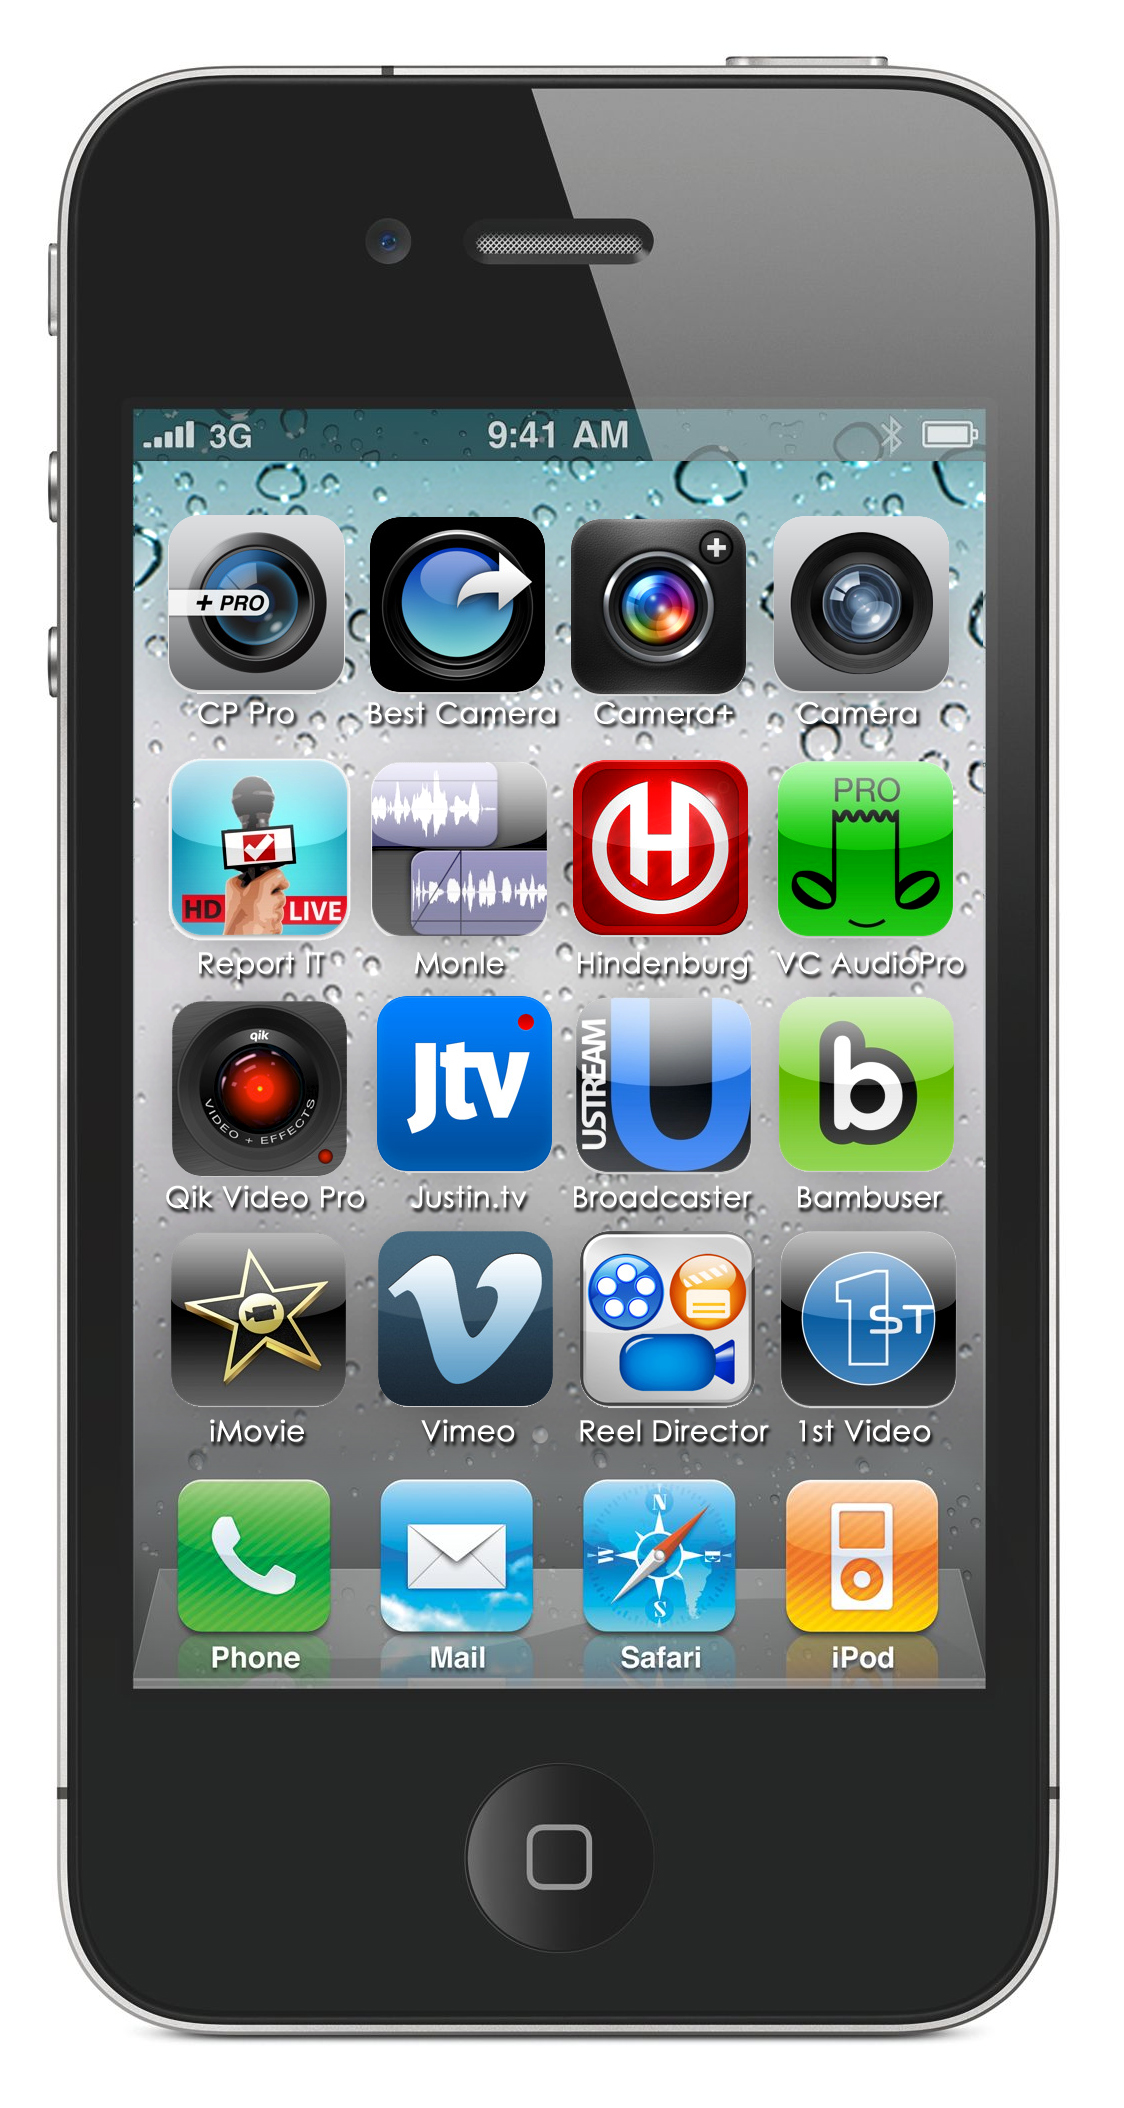 16-must-have-iphone-apps-for-broadcasting.jpg